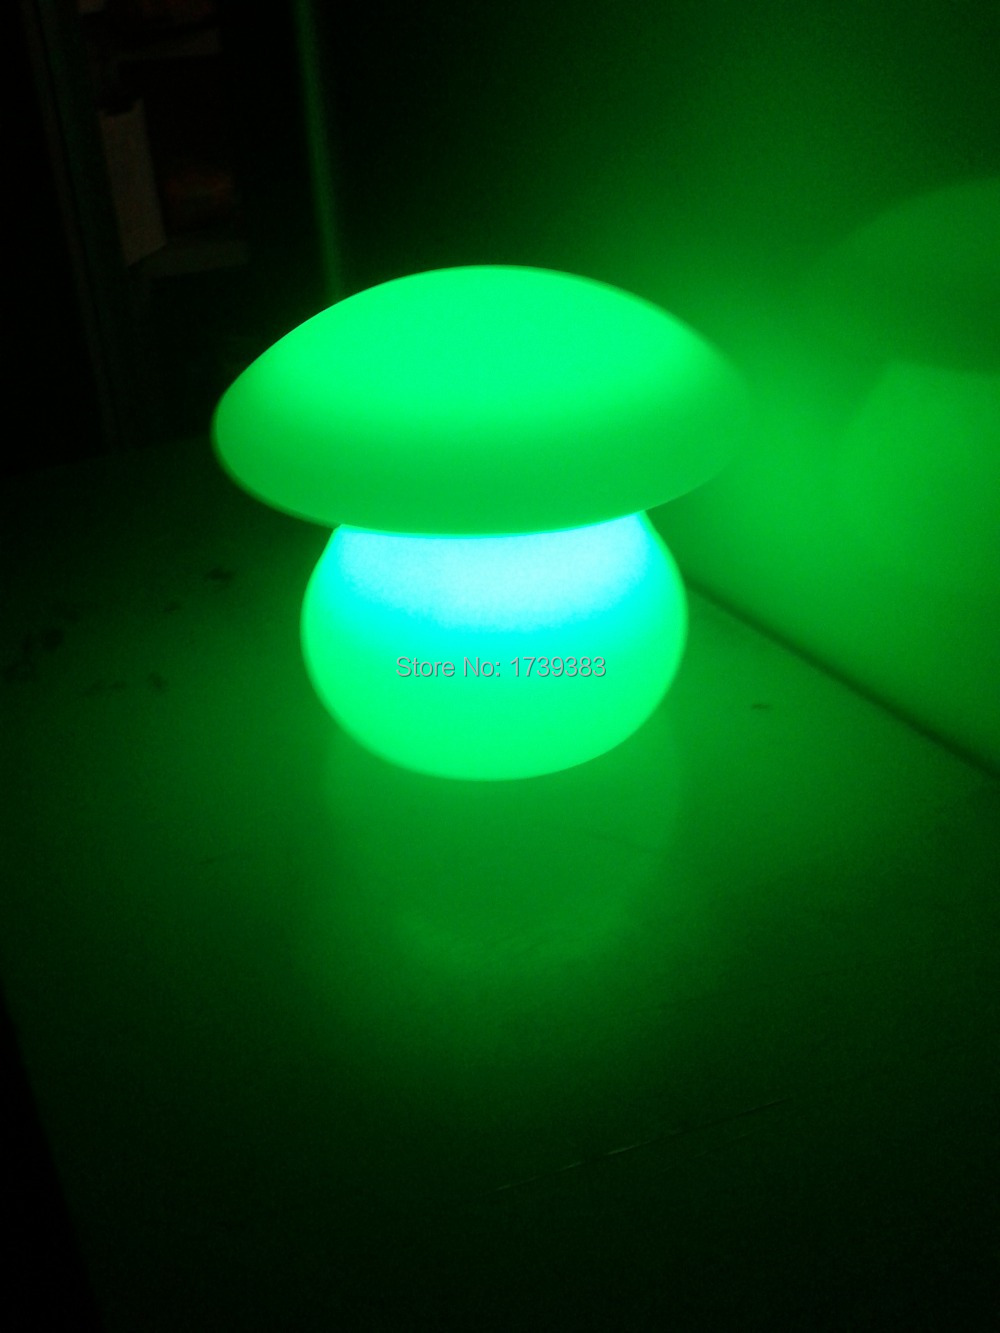 Free shipping Wireless charging waterproof LED Mushroom lamp Glowing Remote control Fungus Umbrella Table lamp LED Desk Light rameshbabu surapu pandi srinivas and rakesh kumar singh biological control of nematodes by fungus nematoctonus robustus